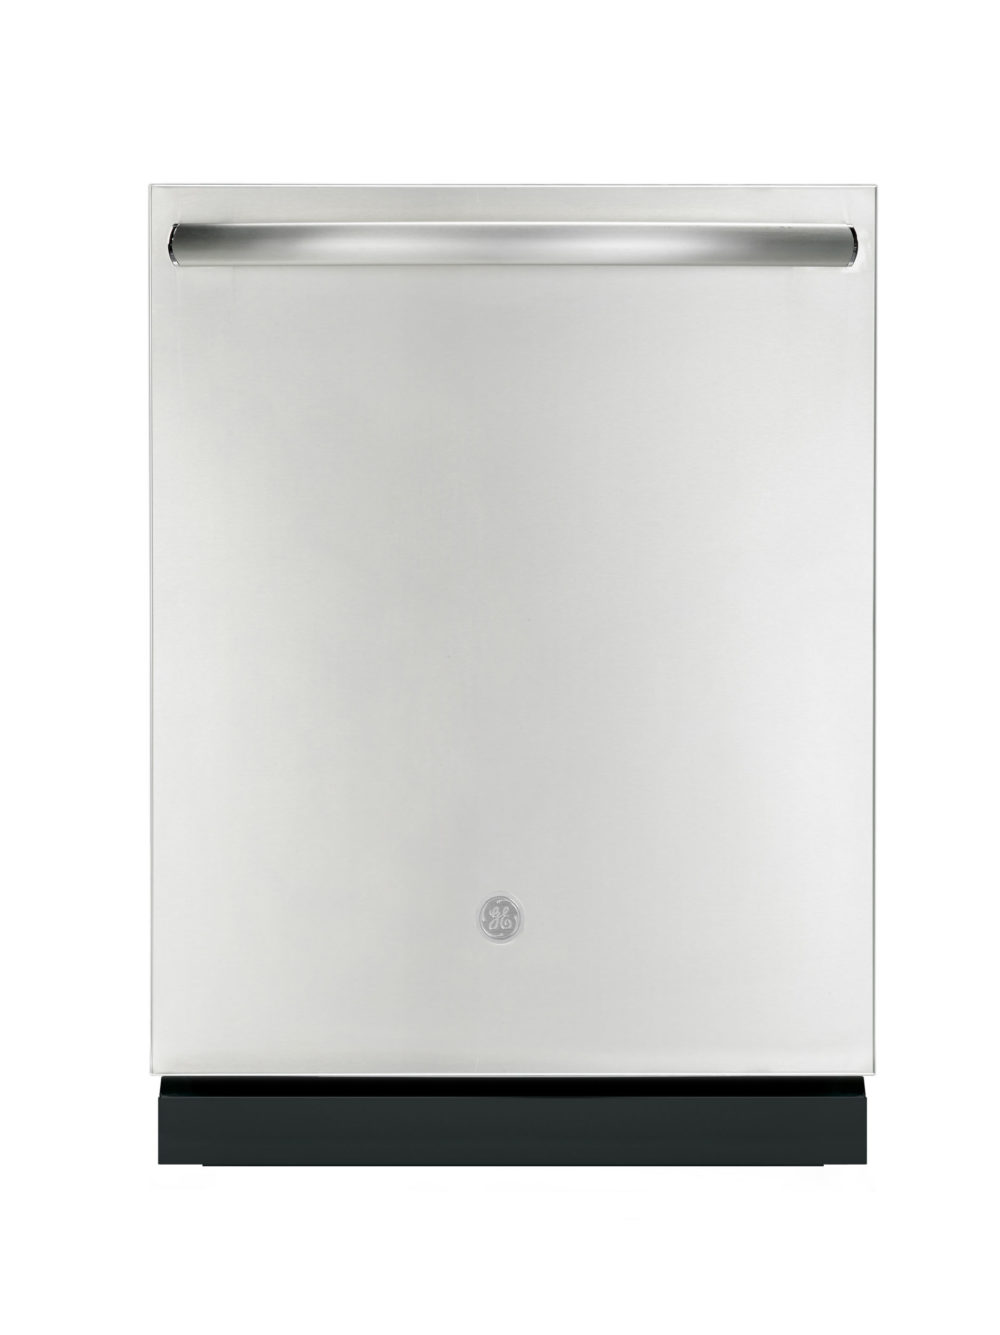 22628 - Dishwasher with Stainless Steel Tub - GBT632SSMSS